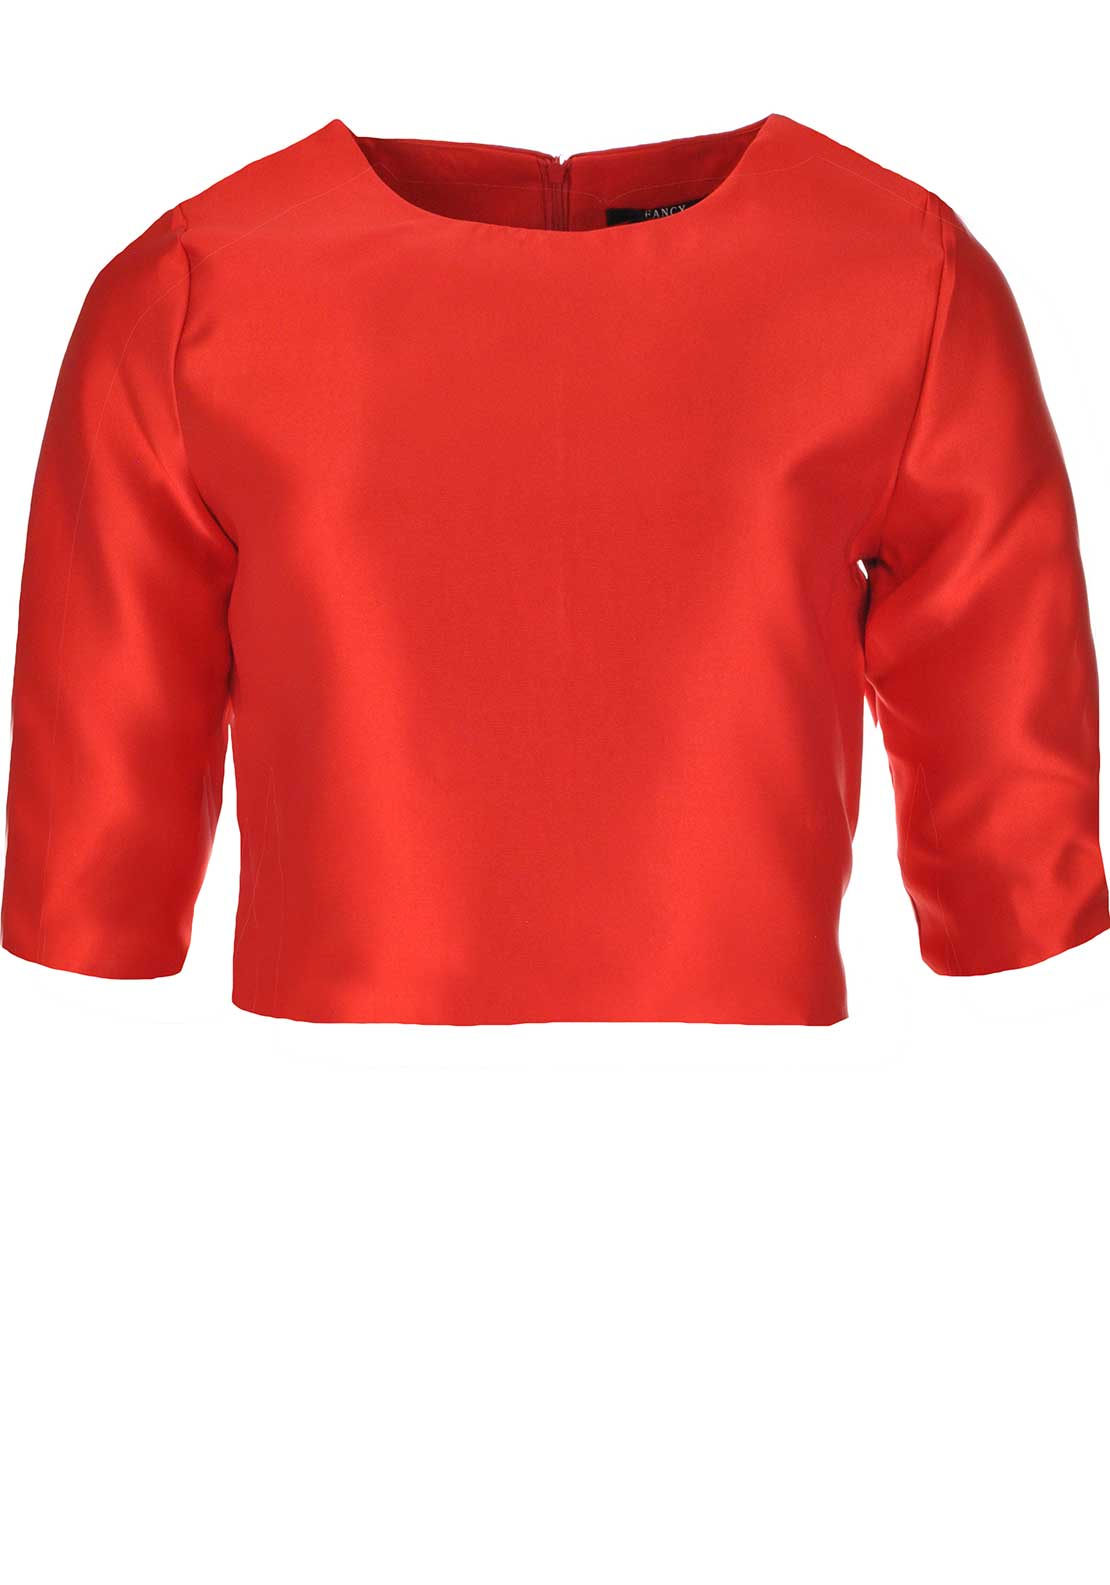 Boutique Cropped Sleeve Satin Crop Top, Red